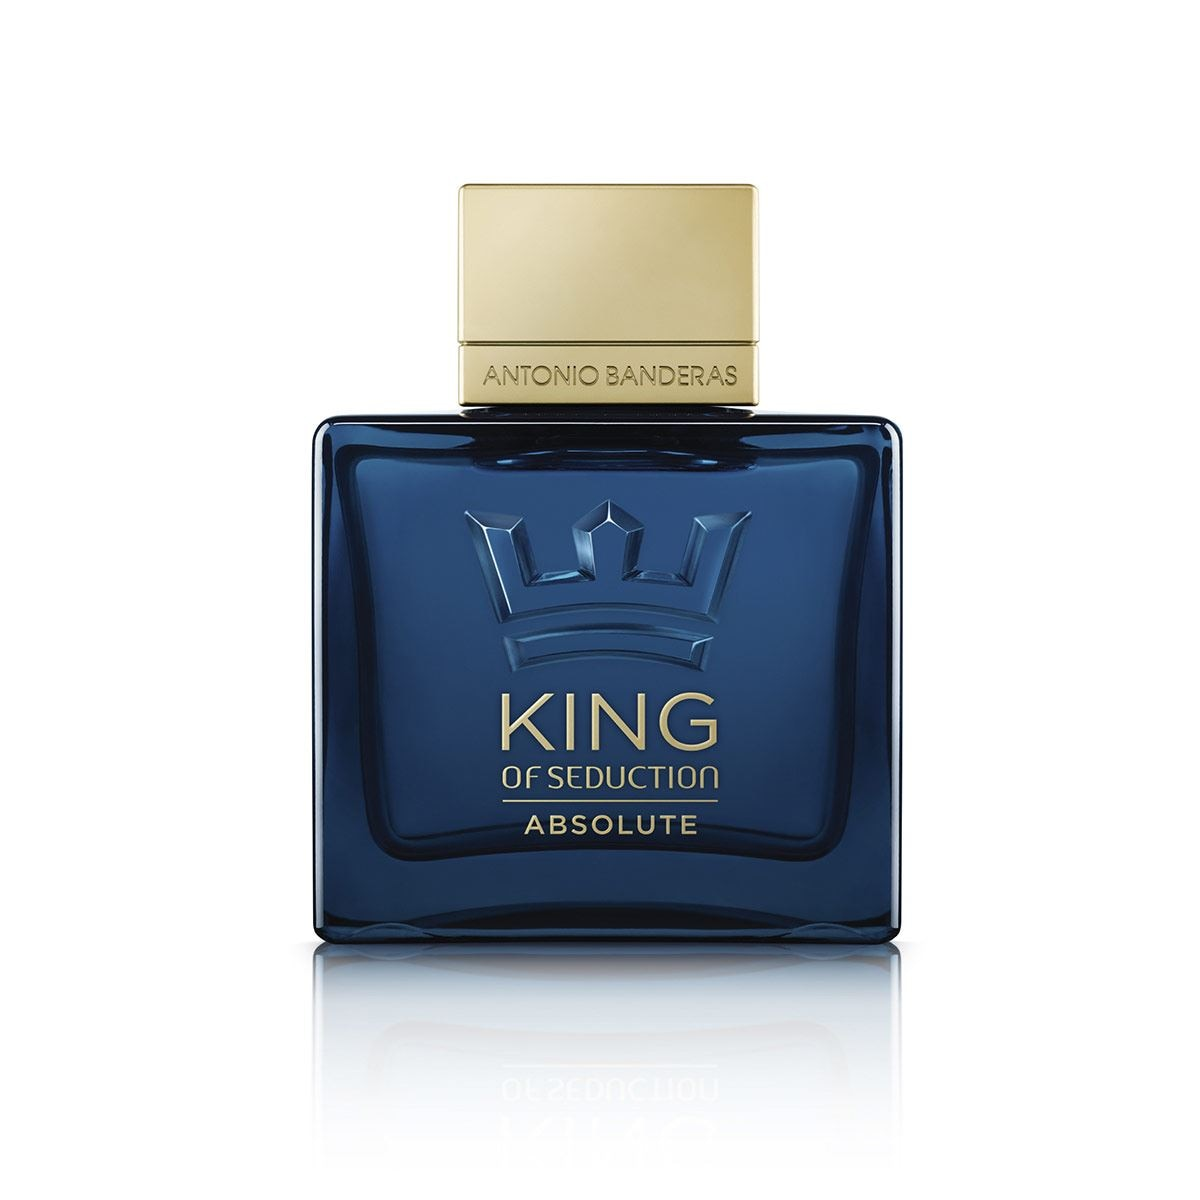 Fragancia para Caballero Antonio Banderas King of Seduction Absolute 100 ml